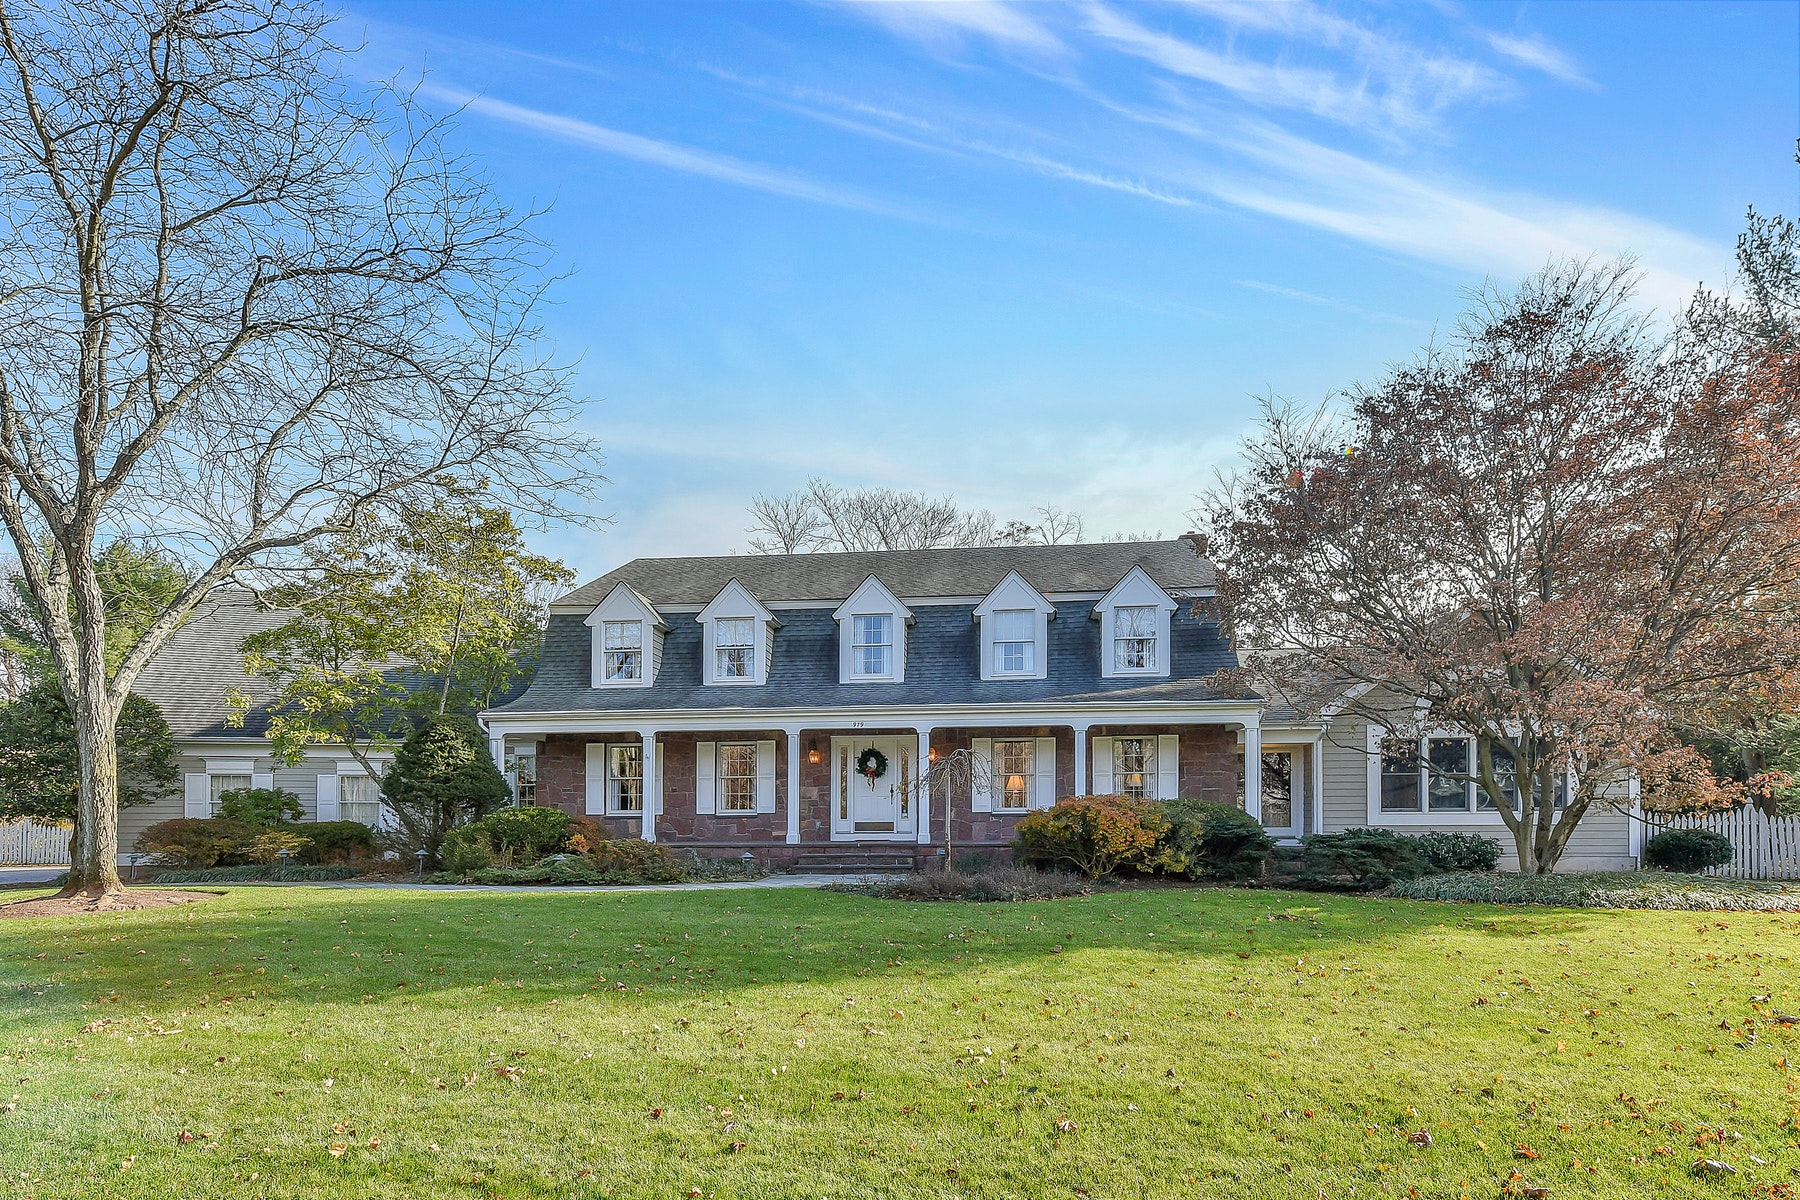 Single Family Home for Sale at Elegant and Classic Center Hall Dutch Colonial 979 Lily Pond Lane, Franklin Lakes, New Jersey, 07417 United States